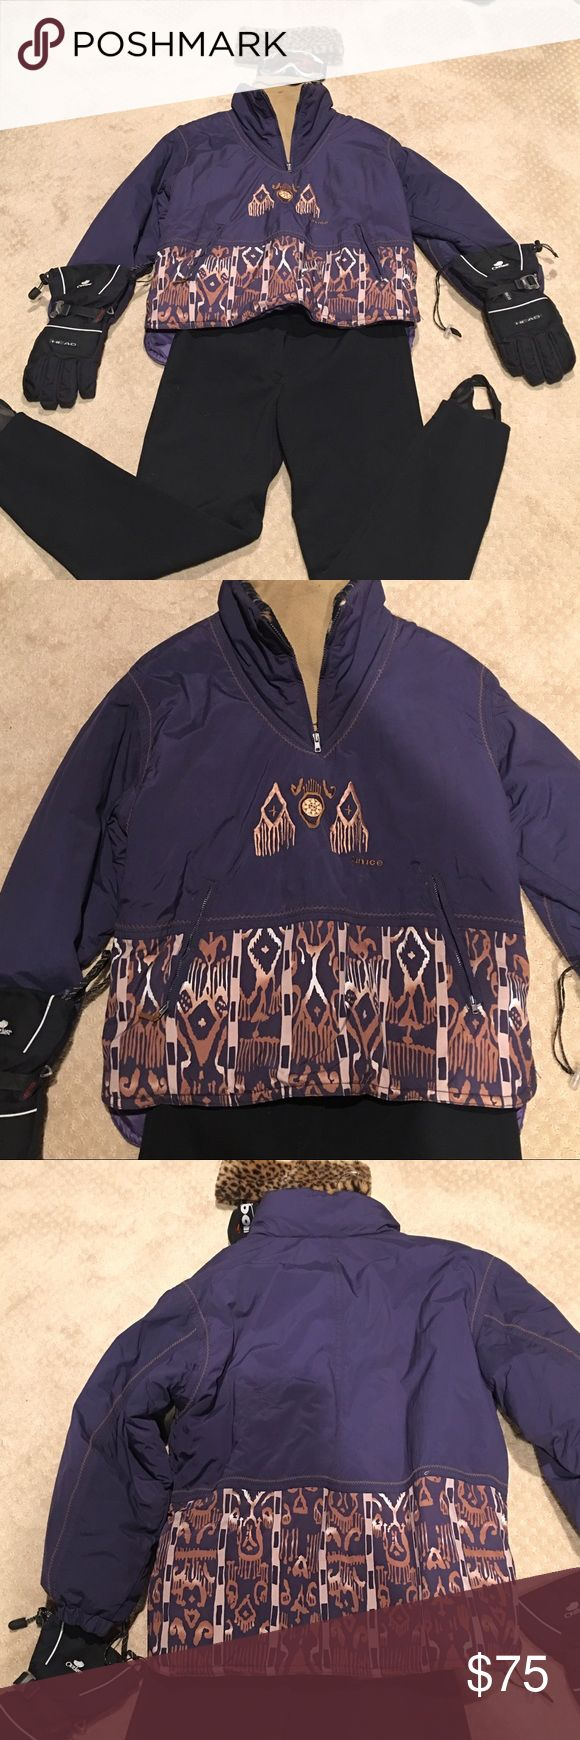 SKI SET package sale. Another great pkg deal. 6 piece set. Jacket, stretch CORBOR pants SIZE 12, BOLLE goggles, leopard Faux fur ead band, Matching dickey,  HEAD gloves Size M. SUNICE/ COBOR Other